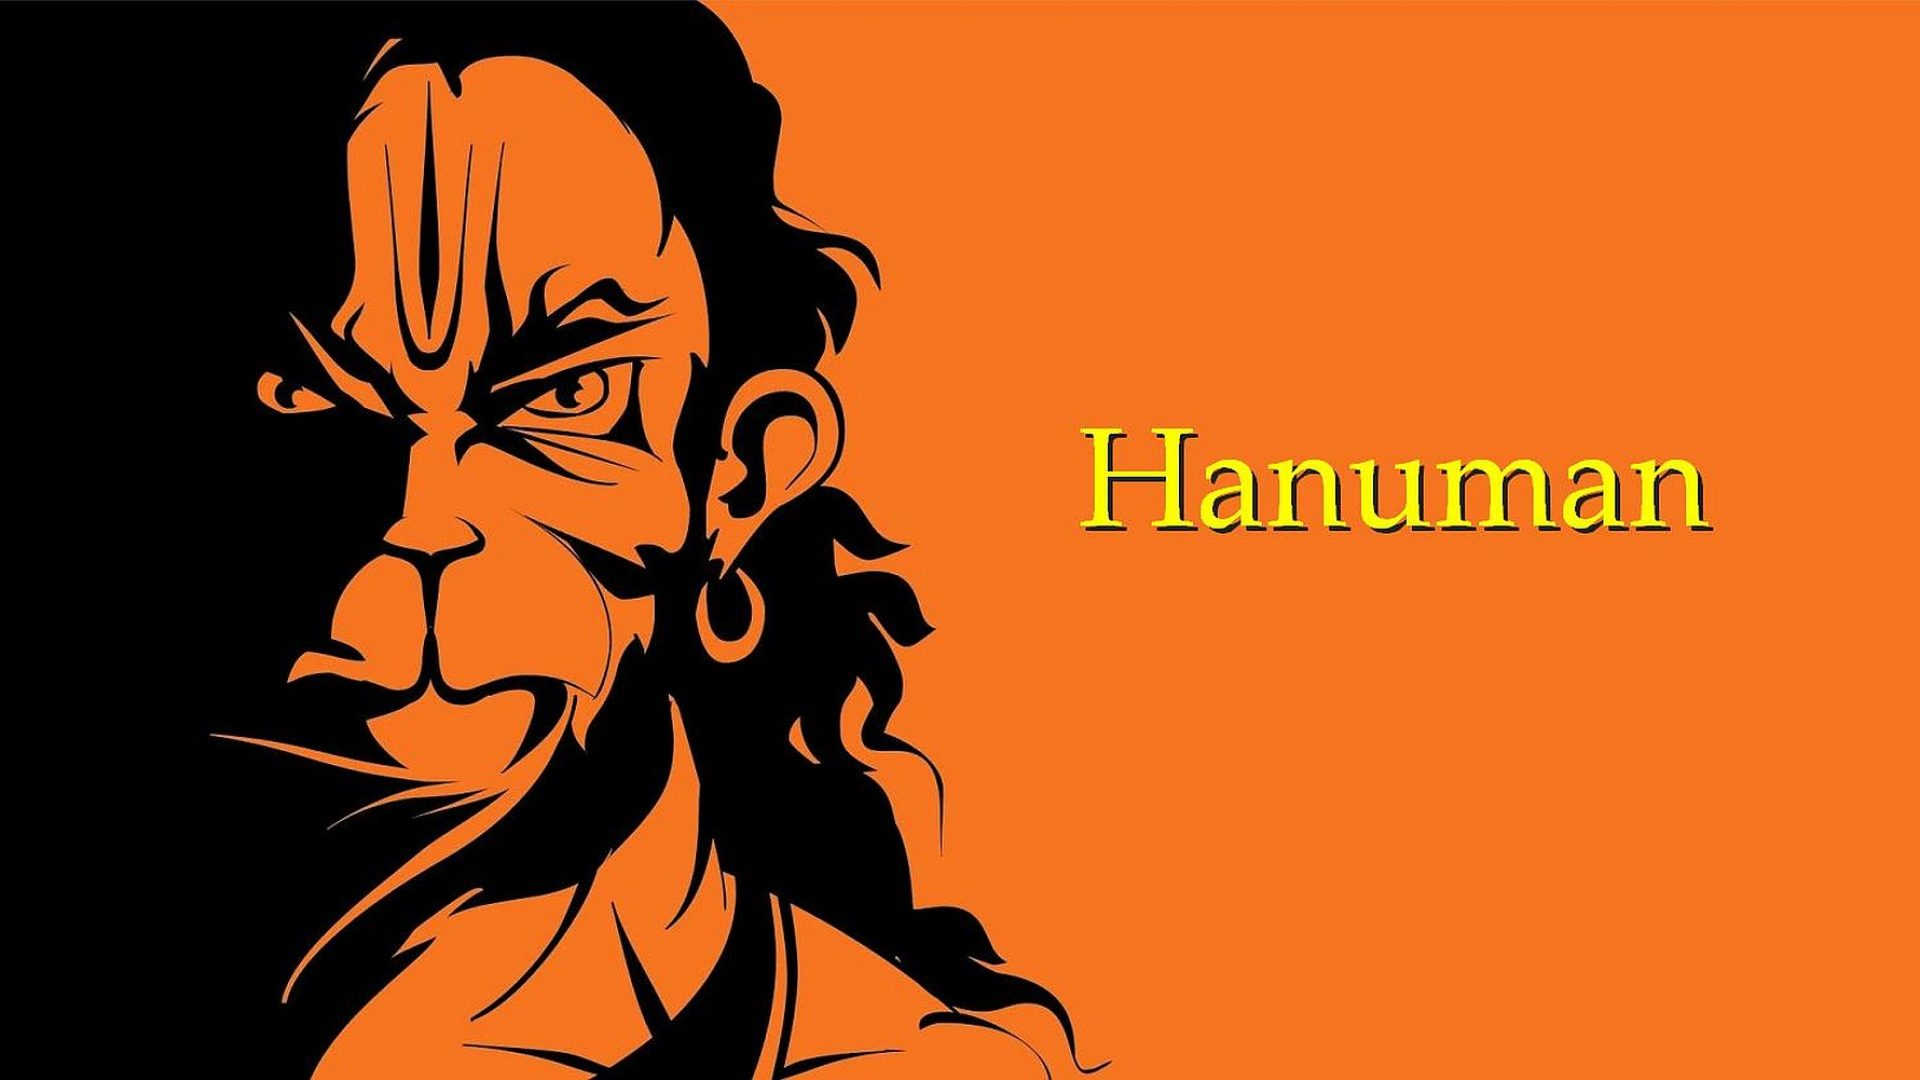 Hanuman Hd Wallpaper Posted By Zoey Sellers